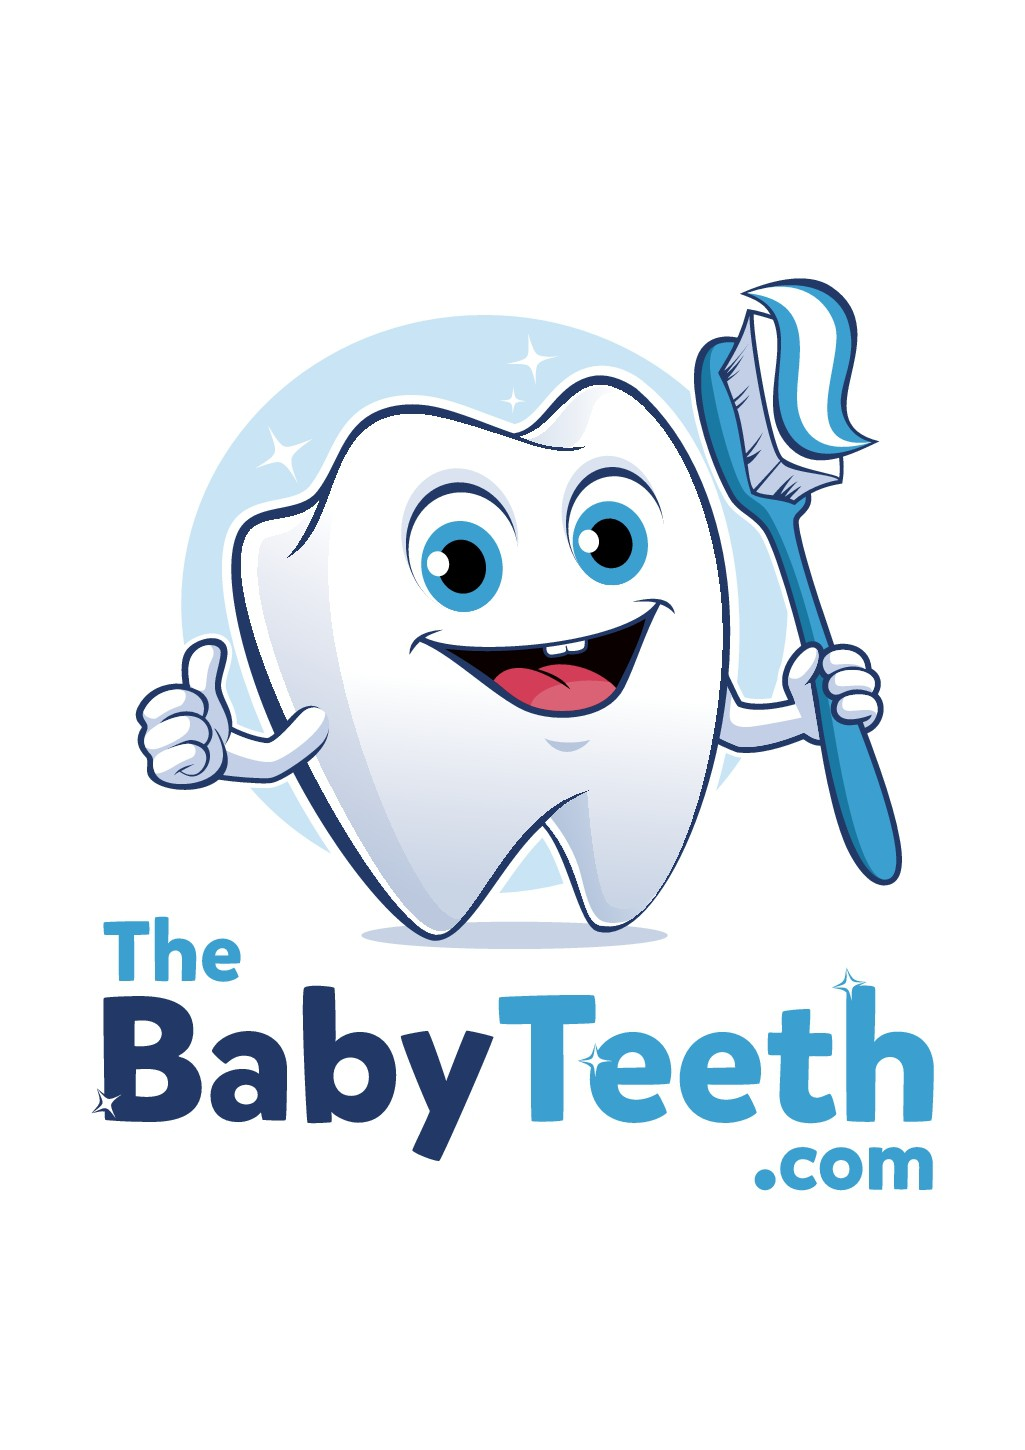 Need a fun logo for the number one educational site about baby teeth